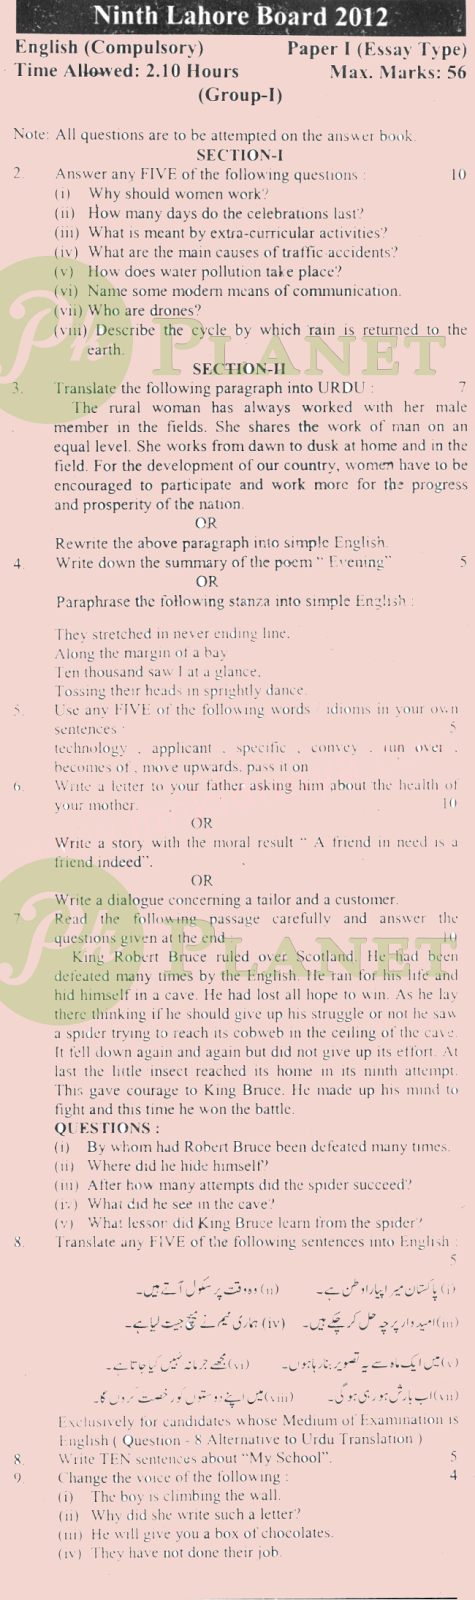 Past Papers of 9th Class Lahore Board 2012 English